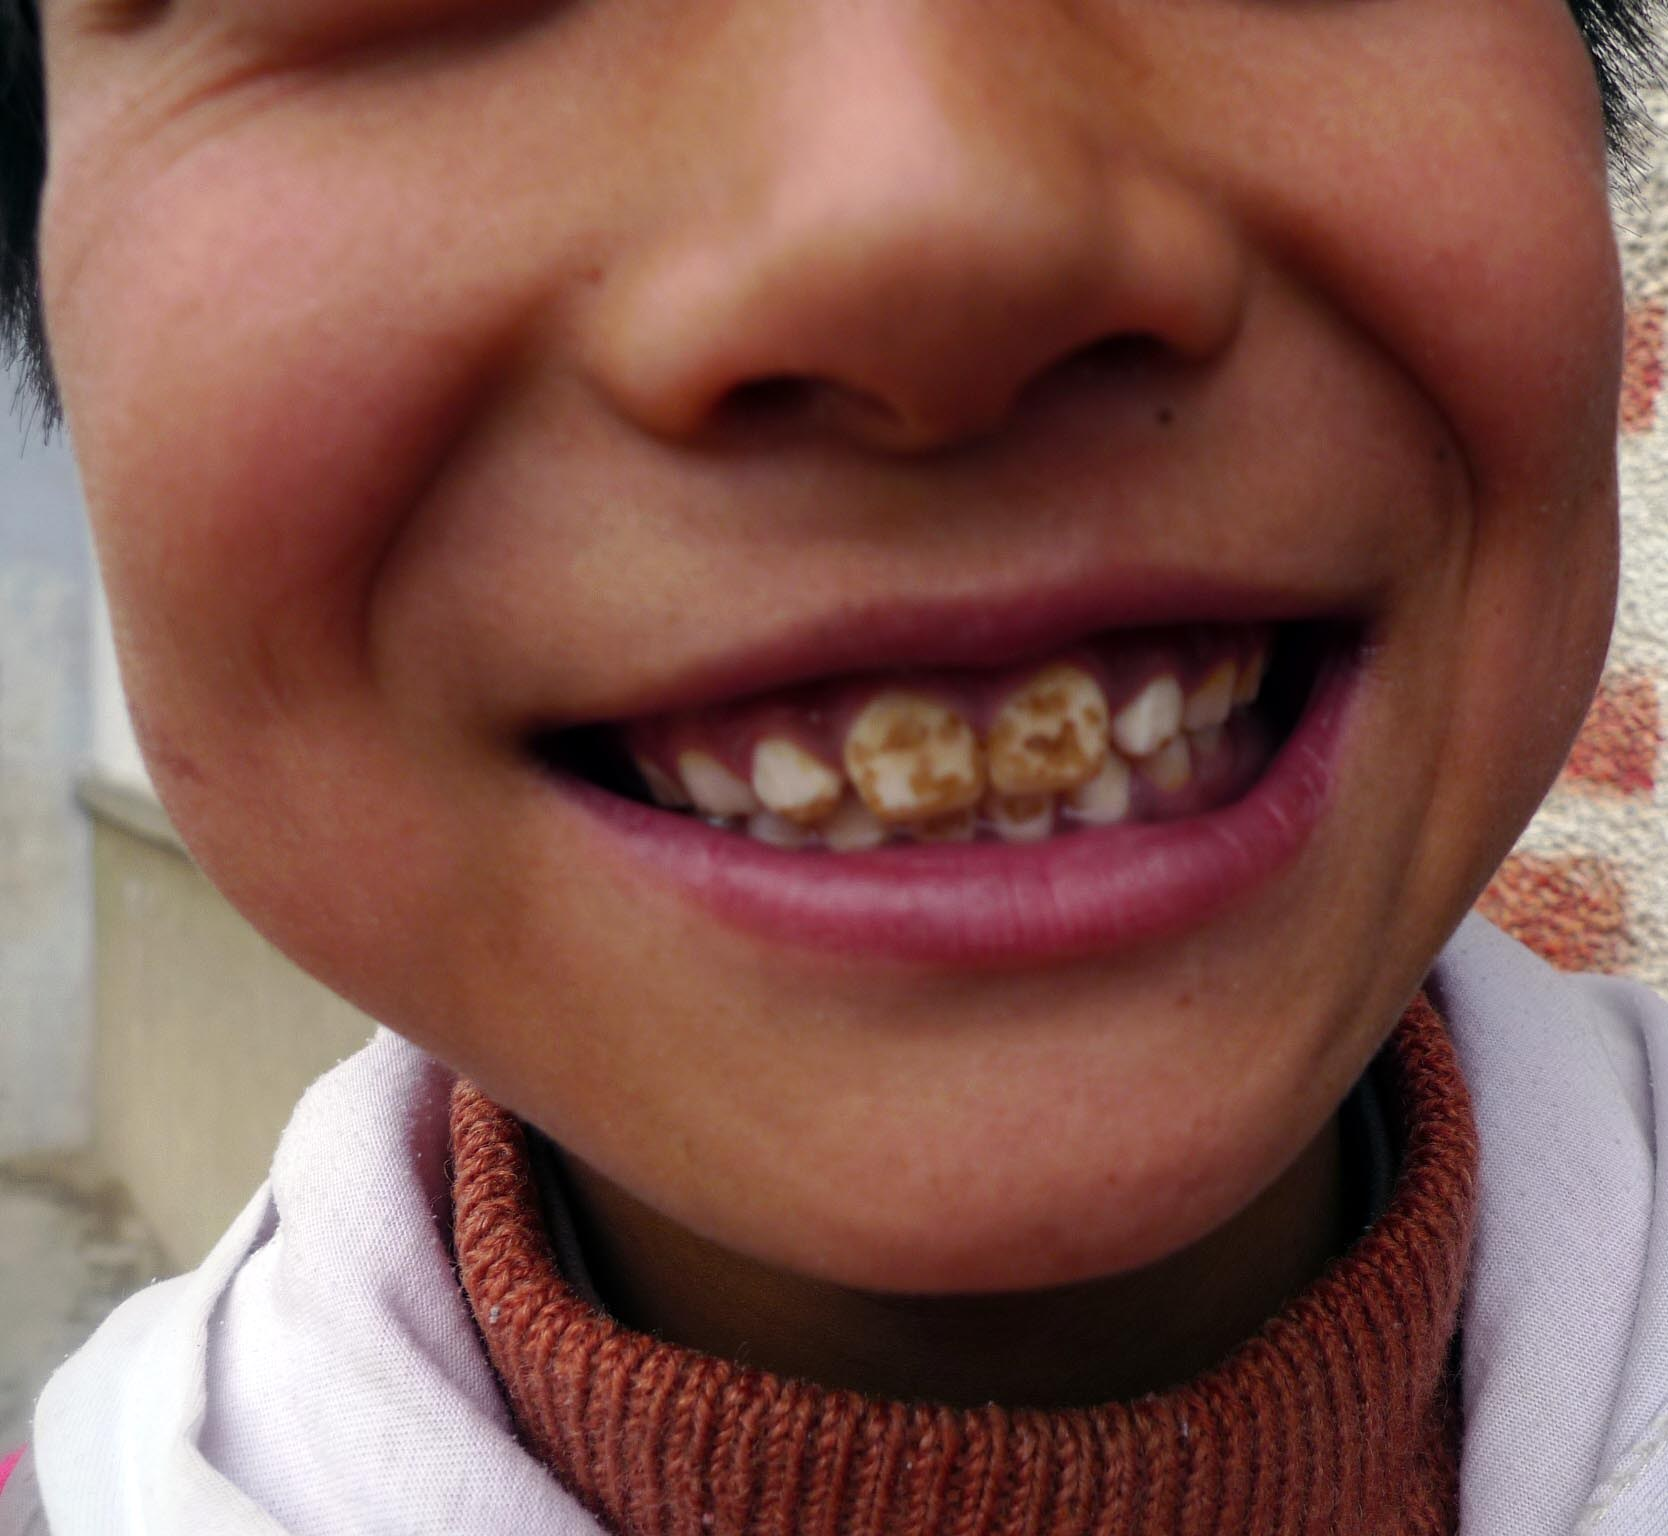 Image: Facts about fluorosis – not a worry in New Zealand